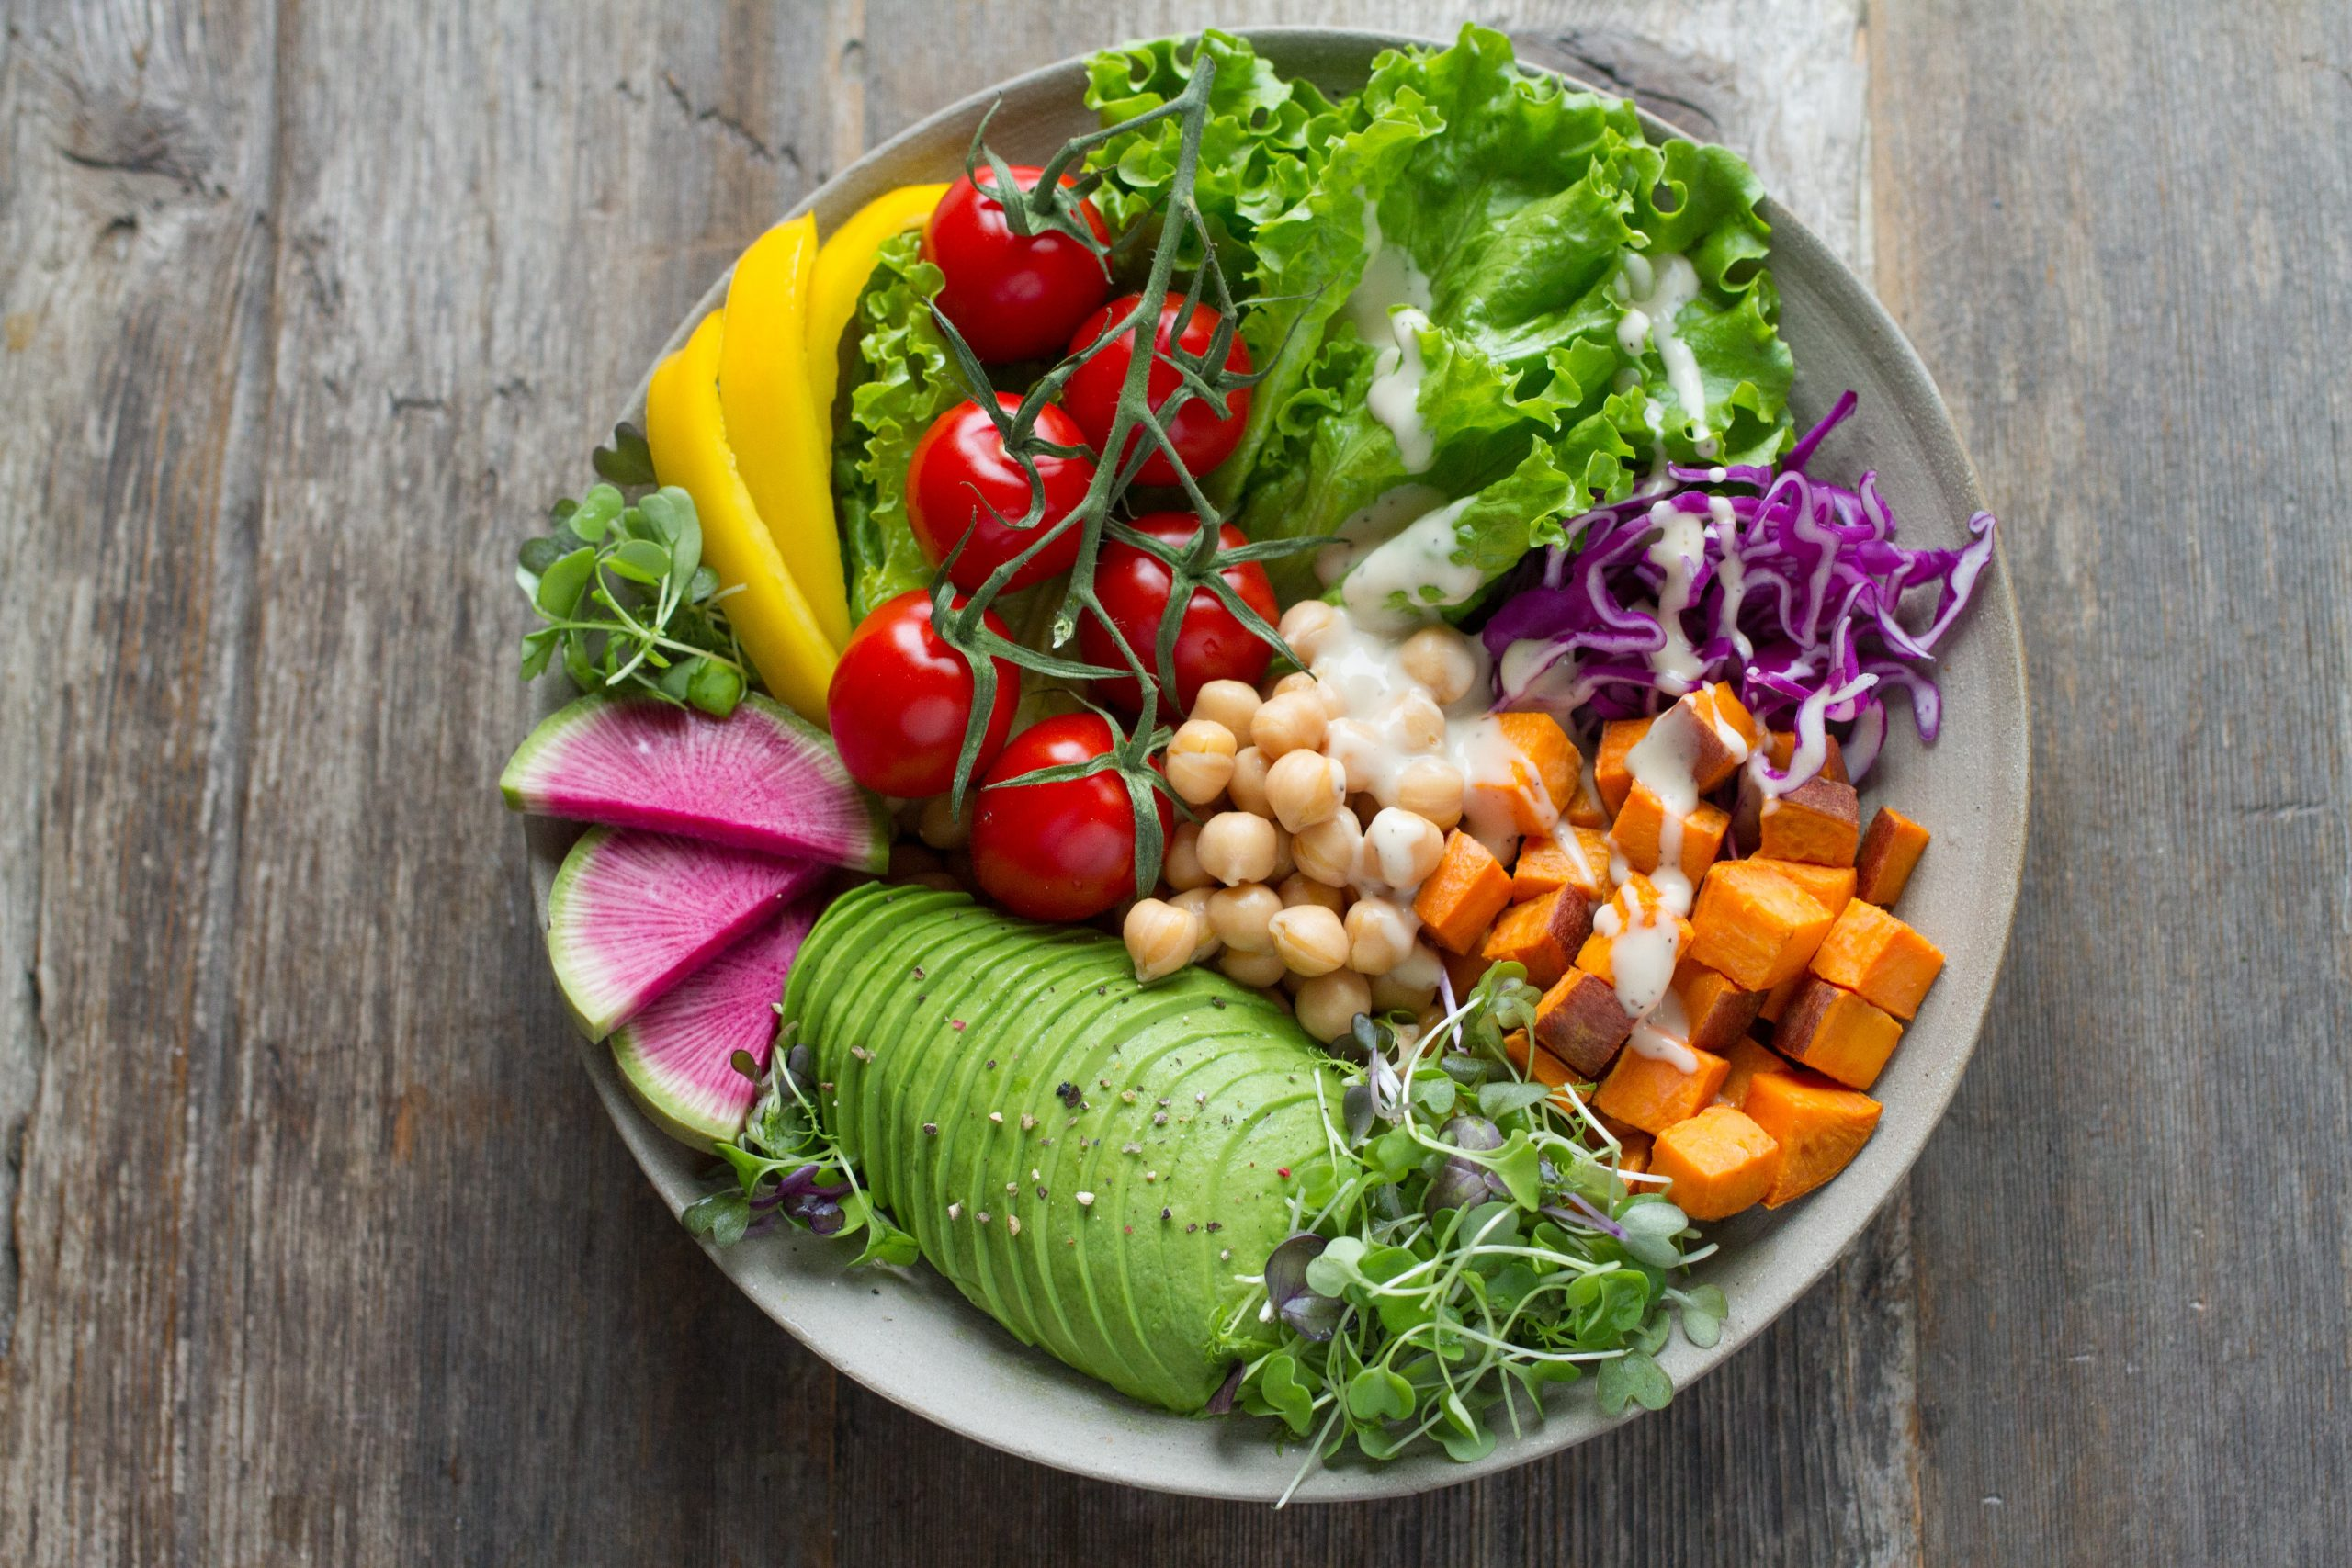 Why the anti-inflammatory diet is so important today